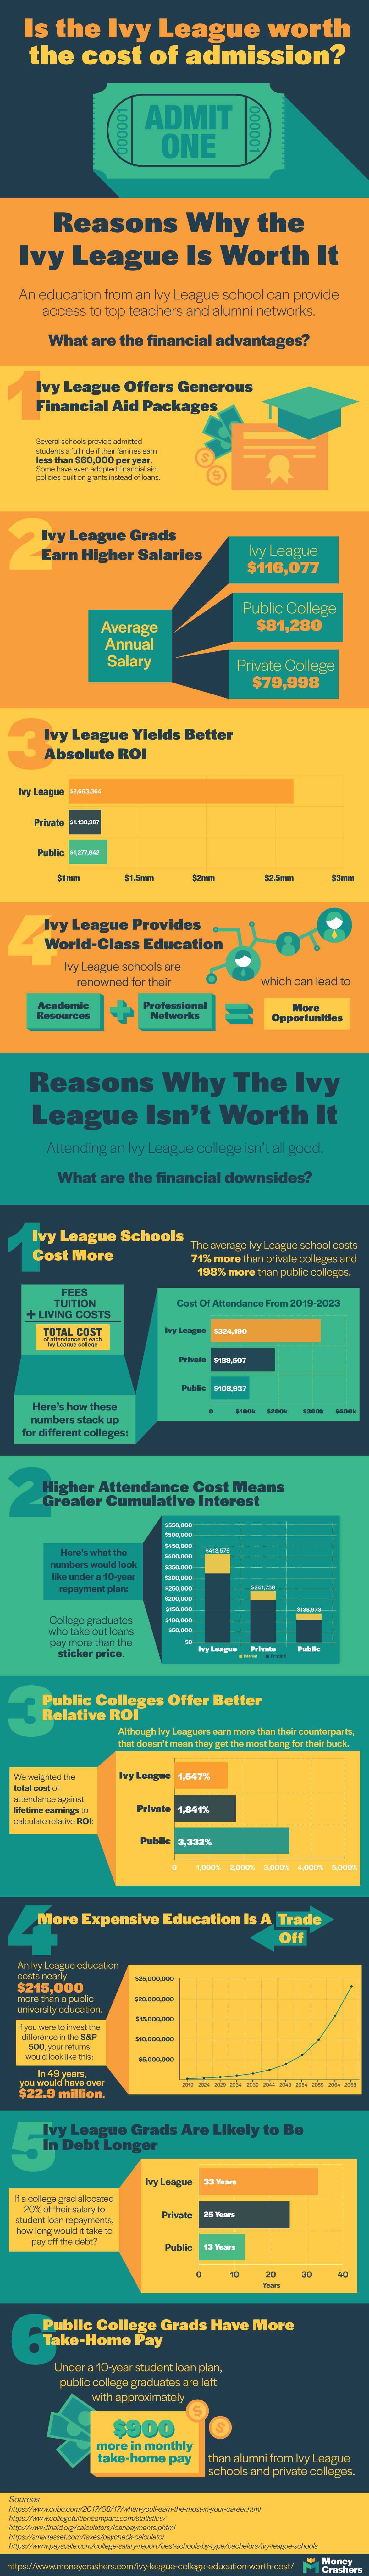 Ivy League Worth Cost Infographic